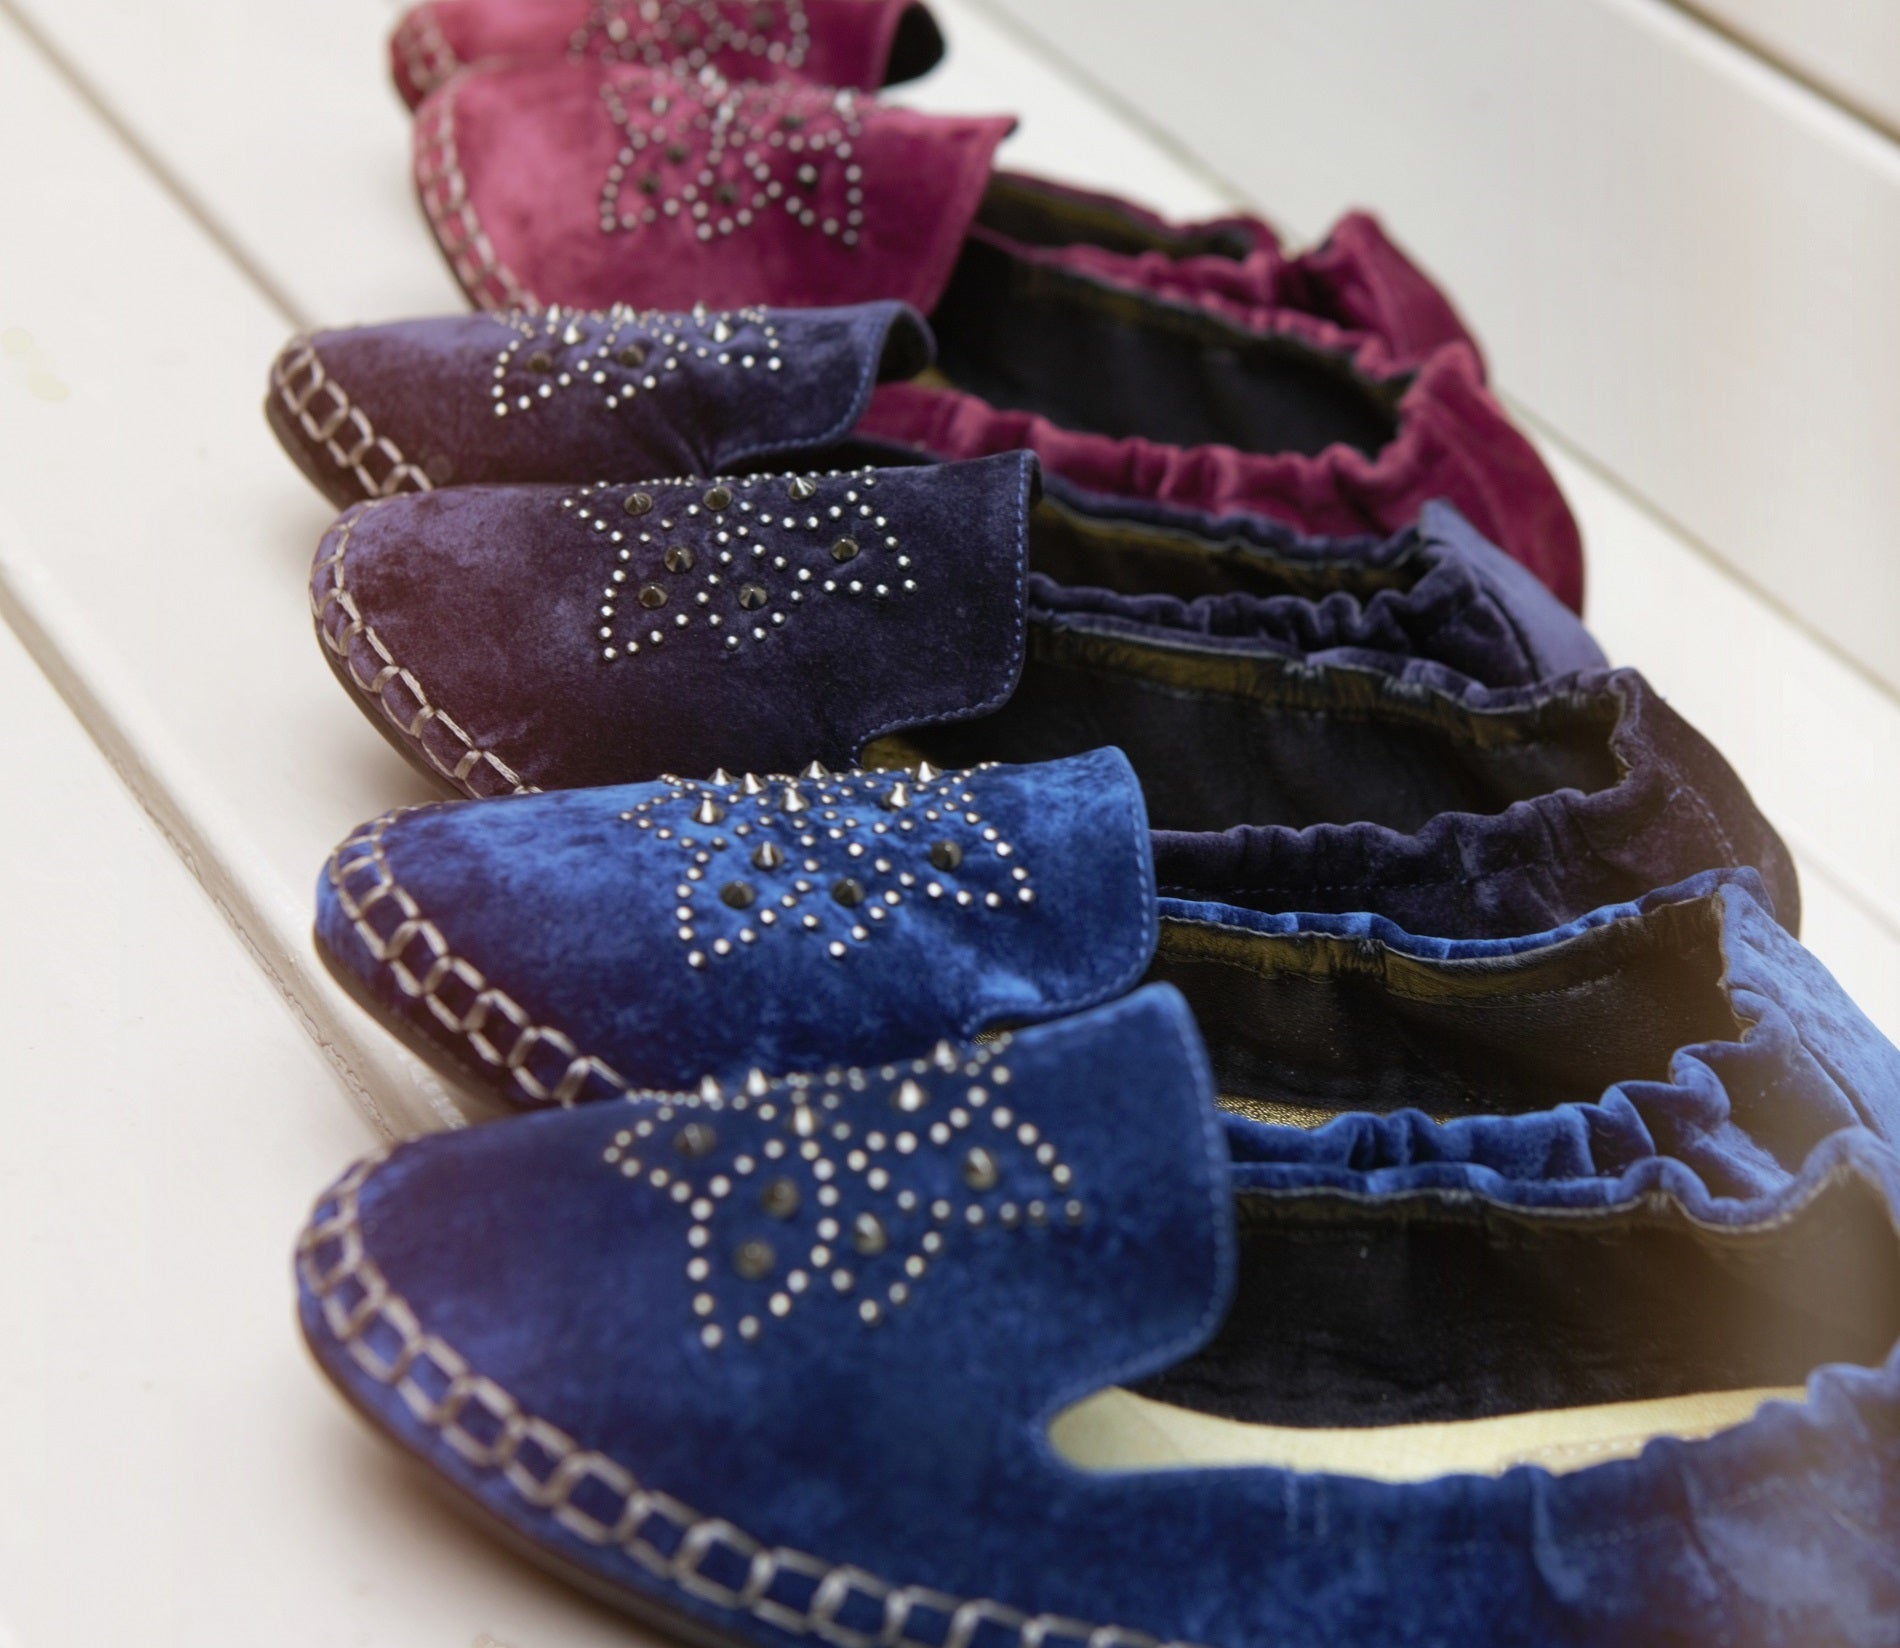 Cocorose London's New Carnaby Style Foldable Espadrilles in Velvet with Studs